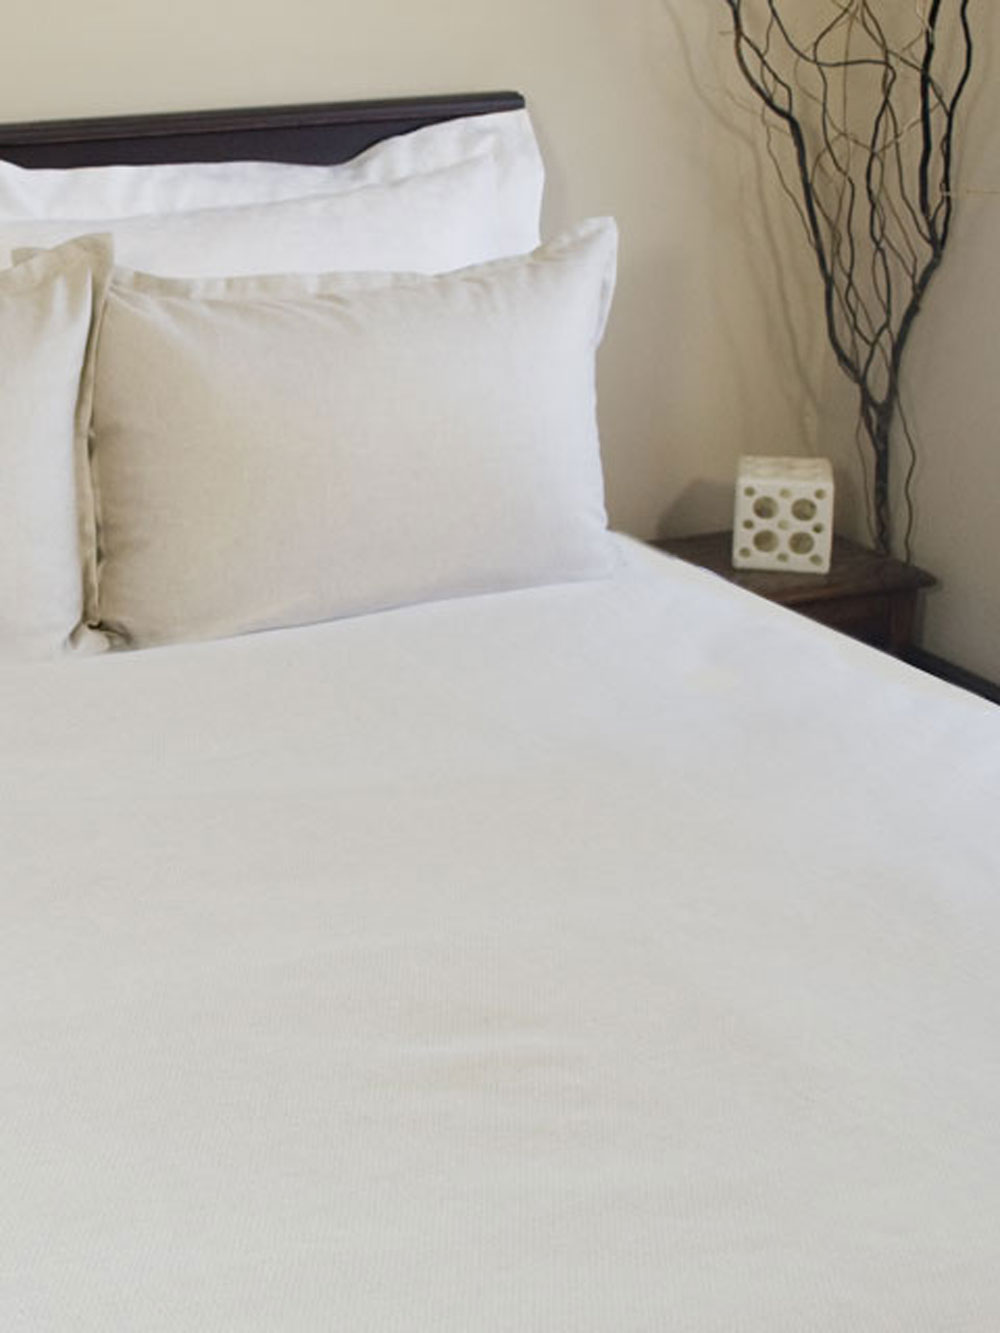 Waterproof Mattress and Pillow Protectors by St. Geneve Luxury Bedding